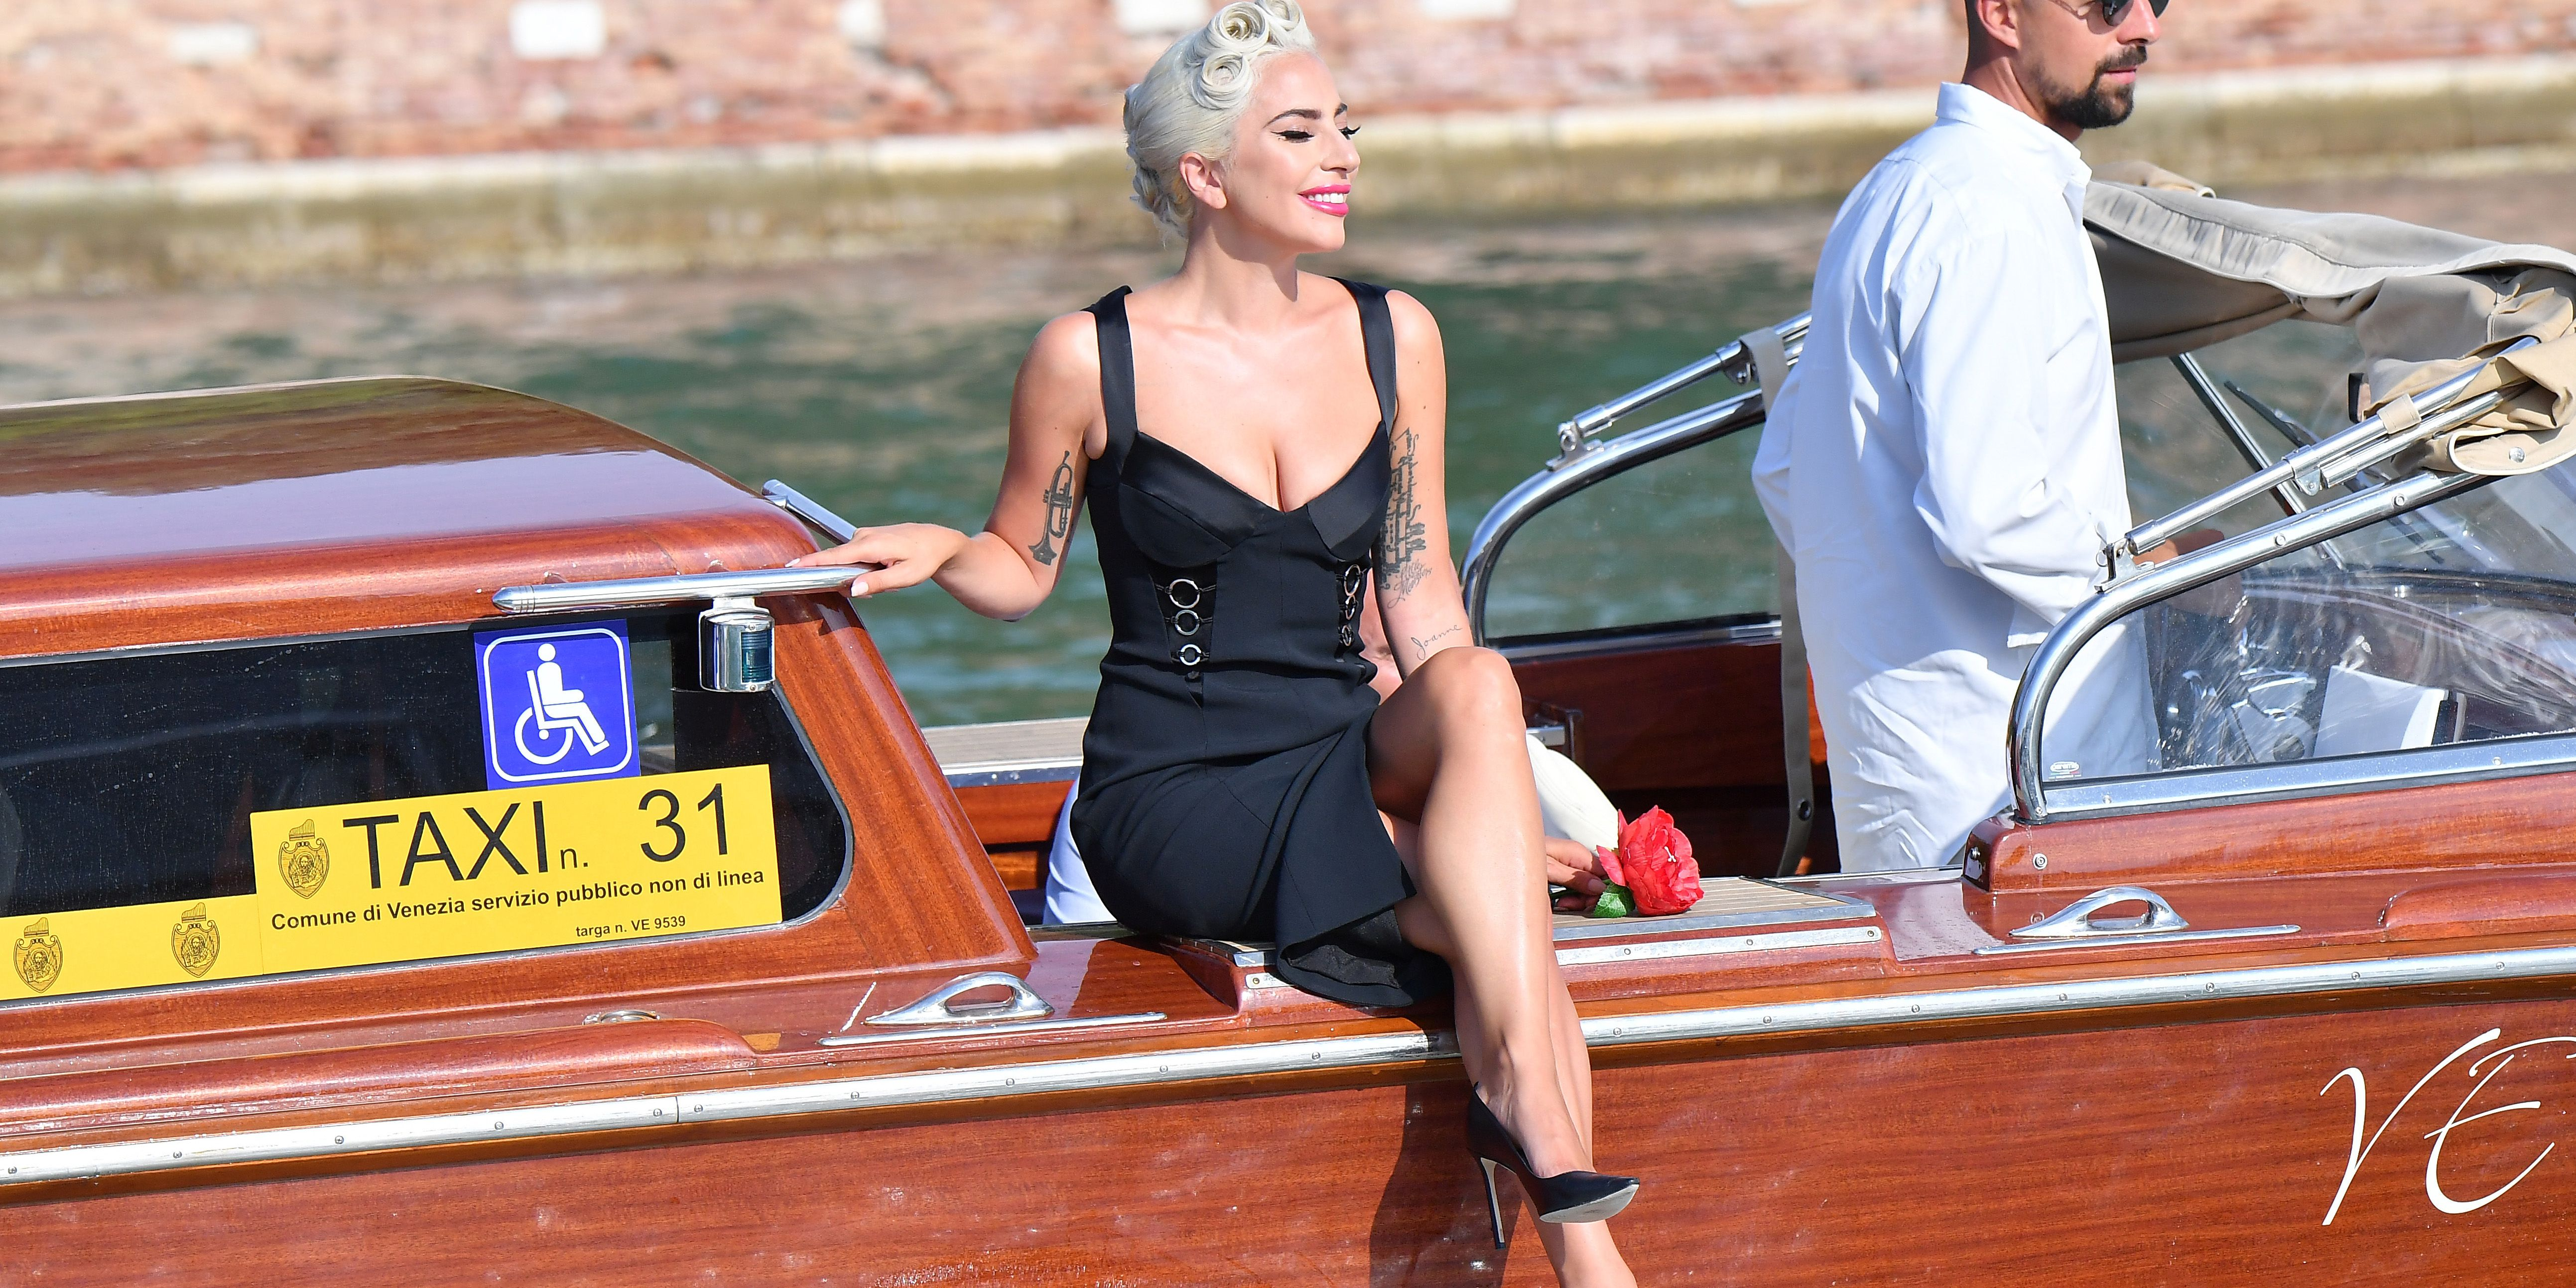 Lady Gaga S Boat Ride To Venice Film Festival Was An Inspiring Level Of Extra